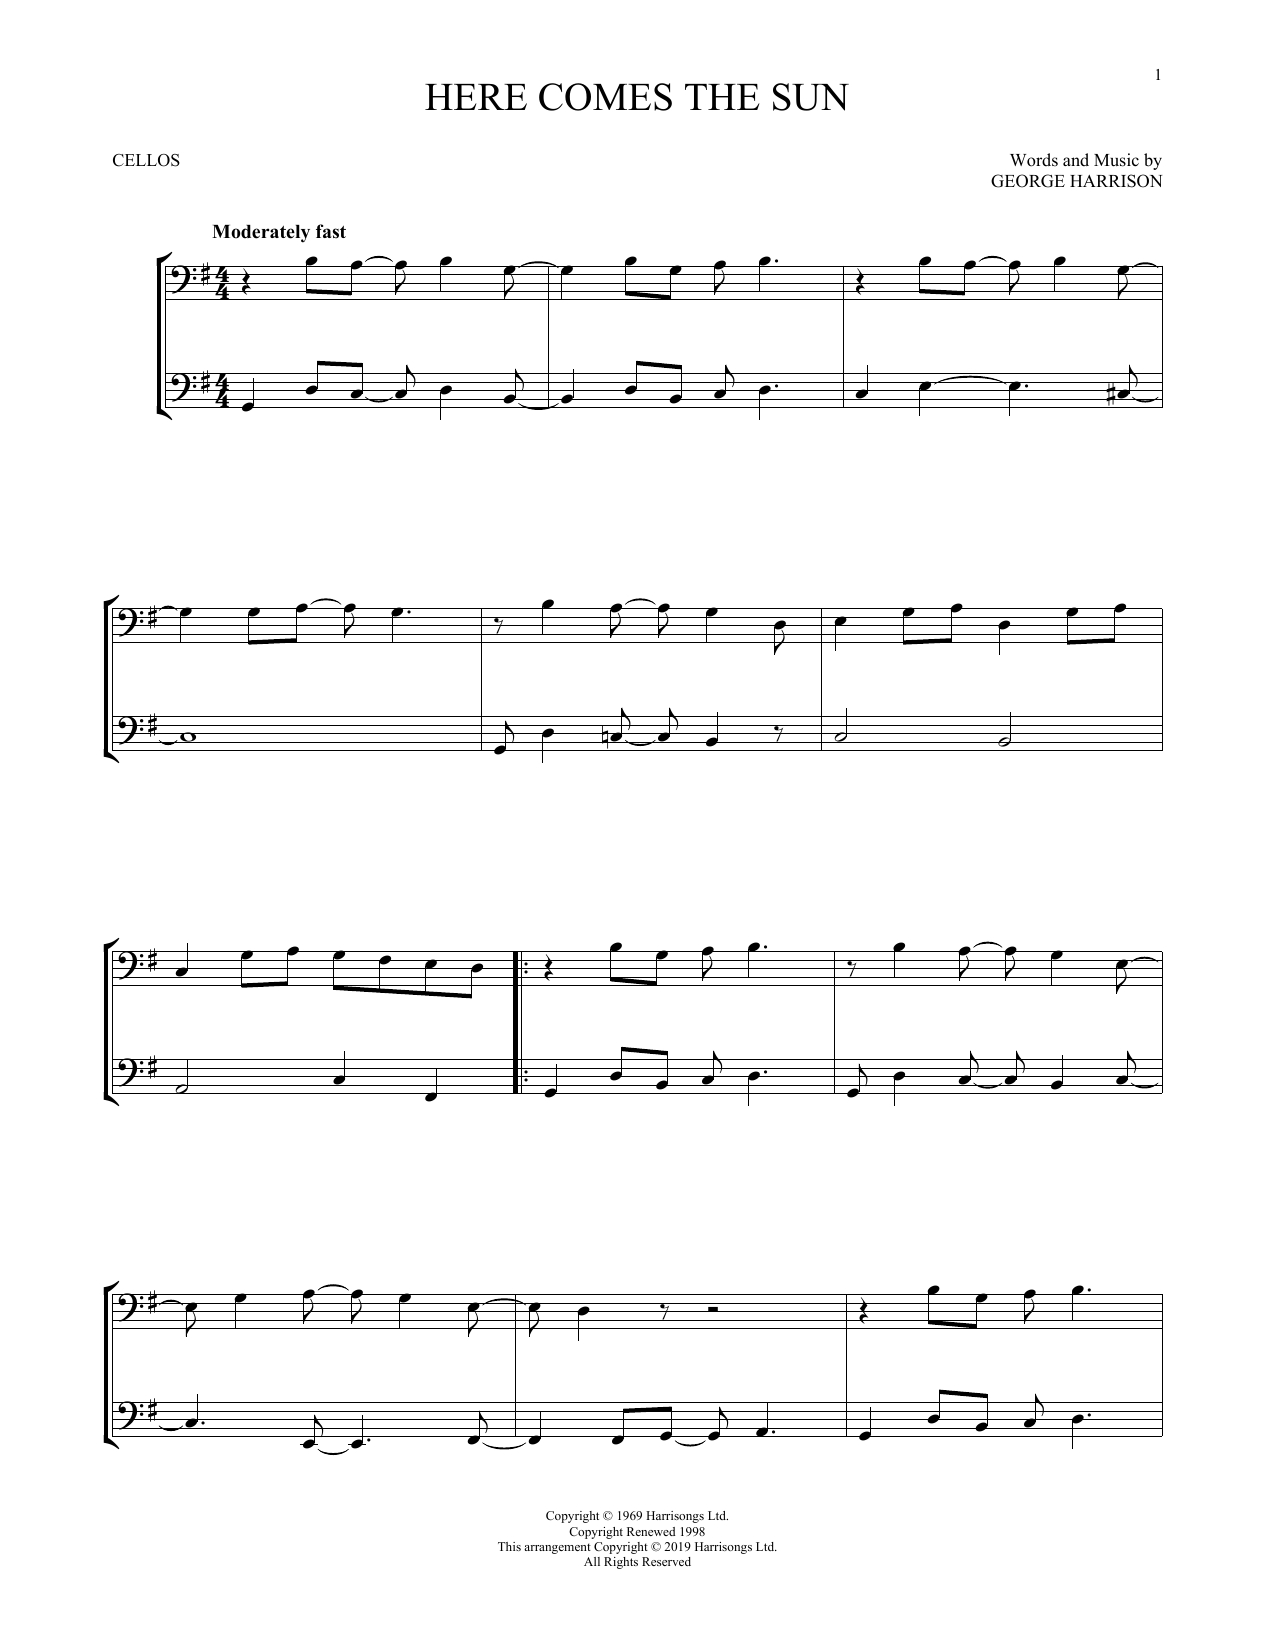 Here Comes The Sun Chords The Beatles Here Comes The Sun Sheet Music Notes Chords Download Printable Cello Duet Sku 412449